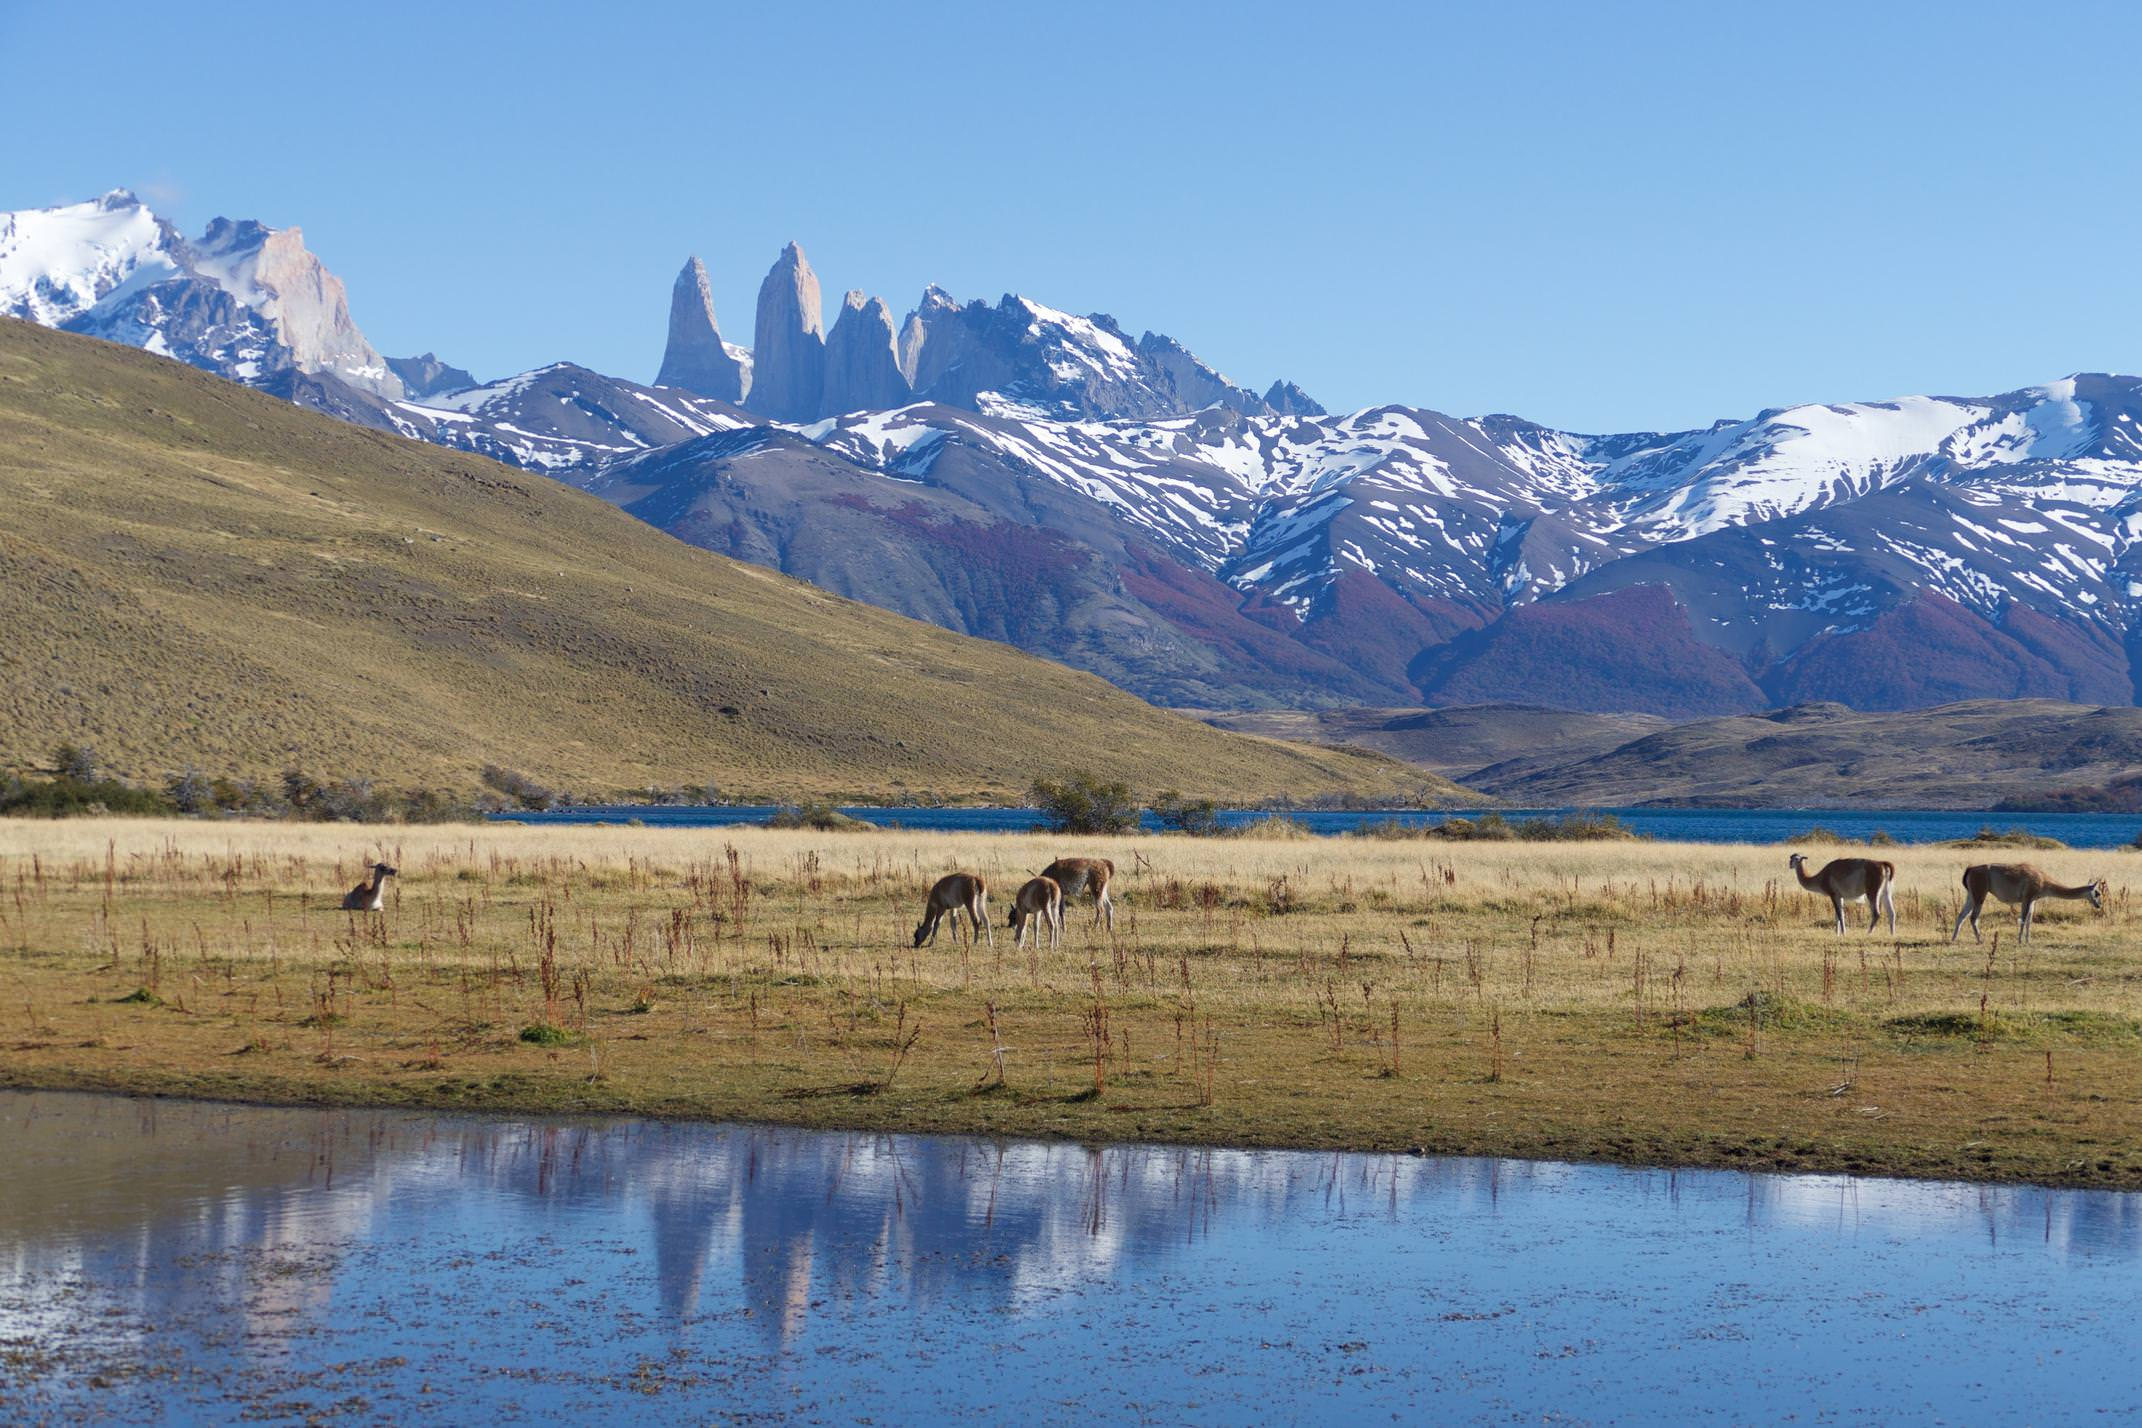 Chile patagonia torres del paine guanacos grazing by laguna azul